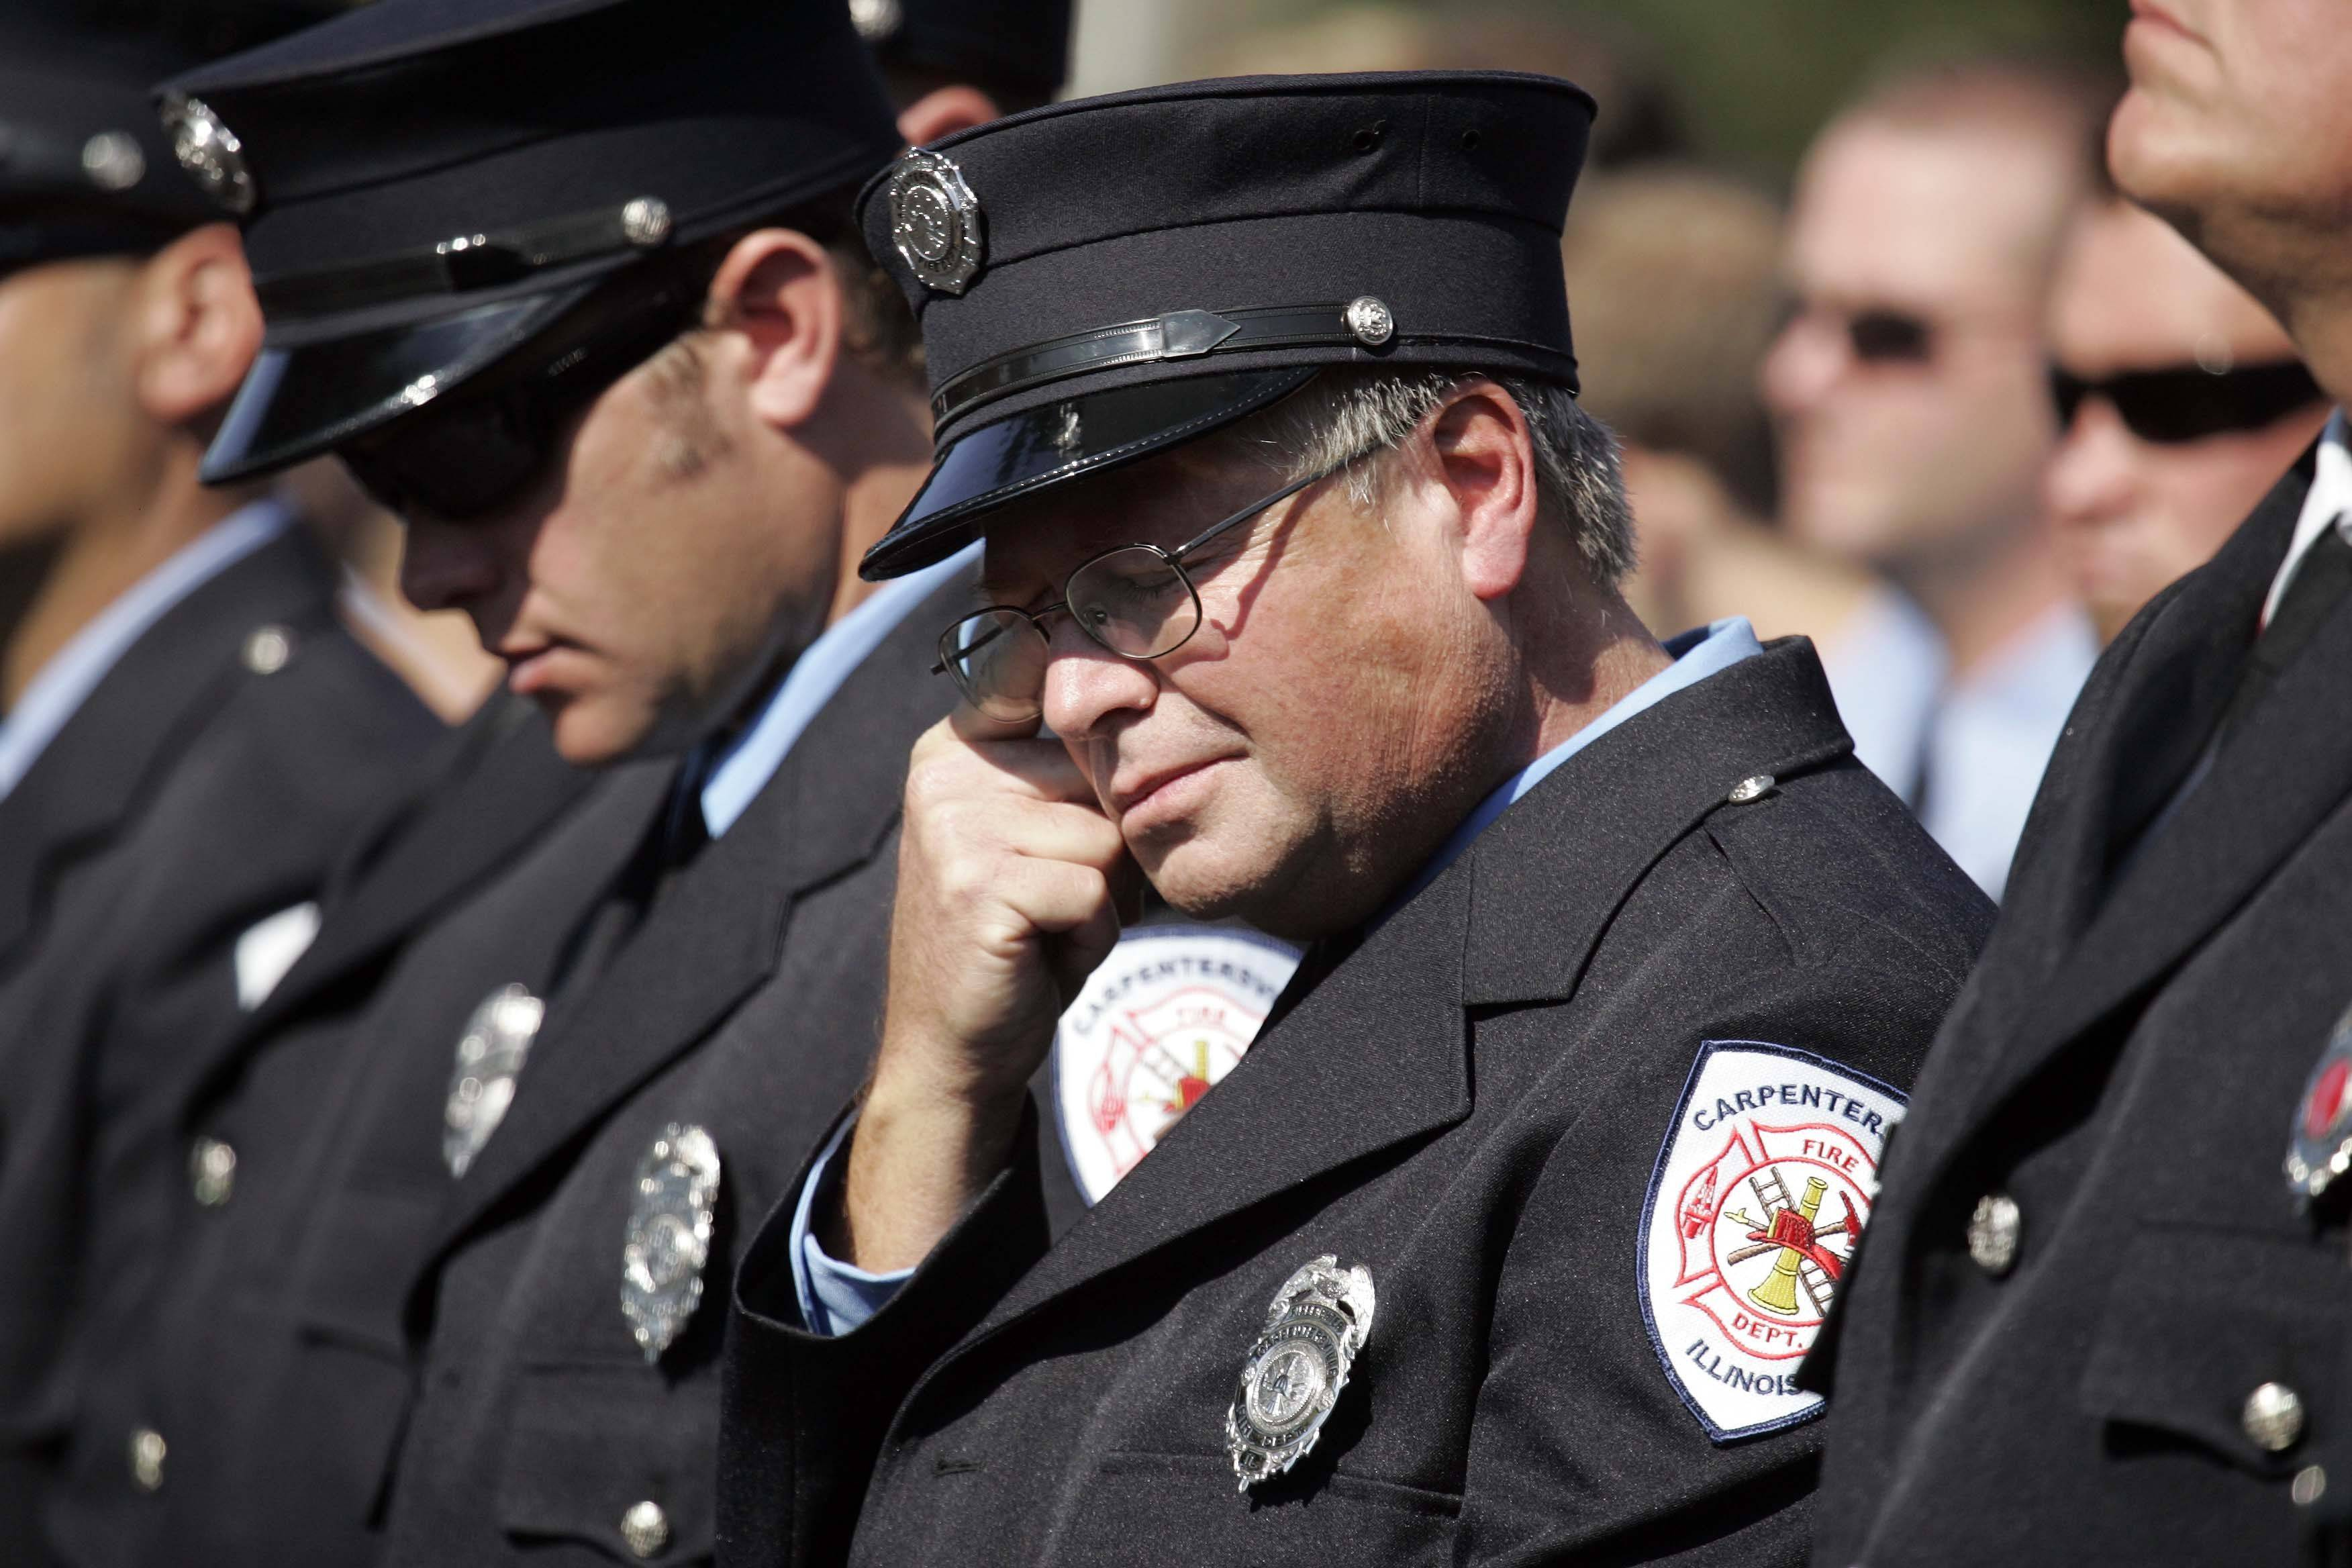 Carpentersville Firefighter Craig Lauer wipes away a tear during the Carpentersville Fire Department's dedication of their firefighter and 9/11 memorial Sunday, September 11, 2011.